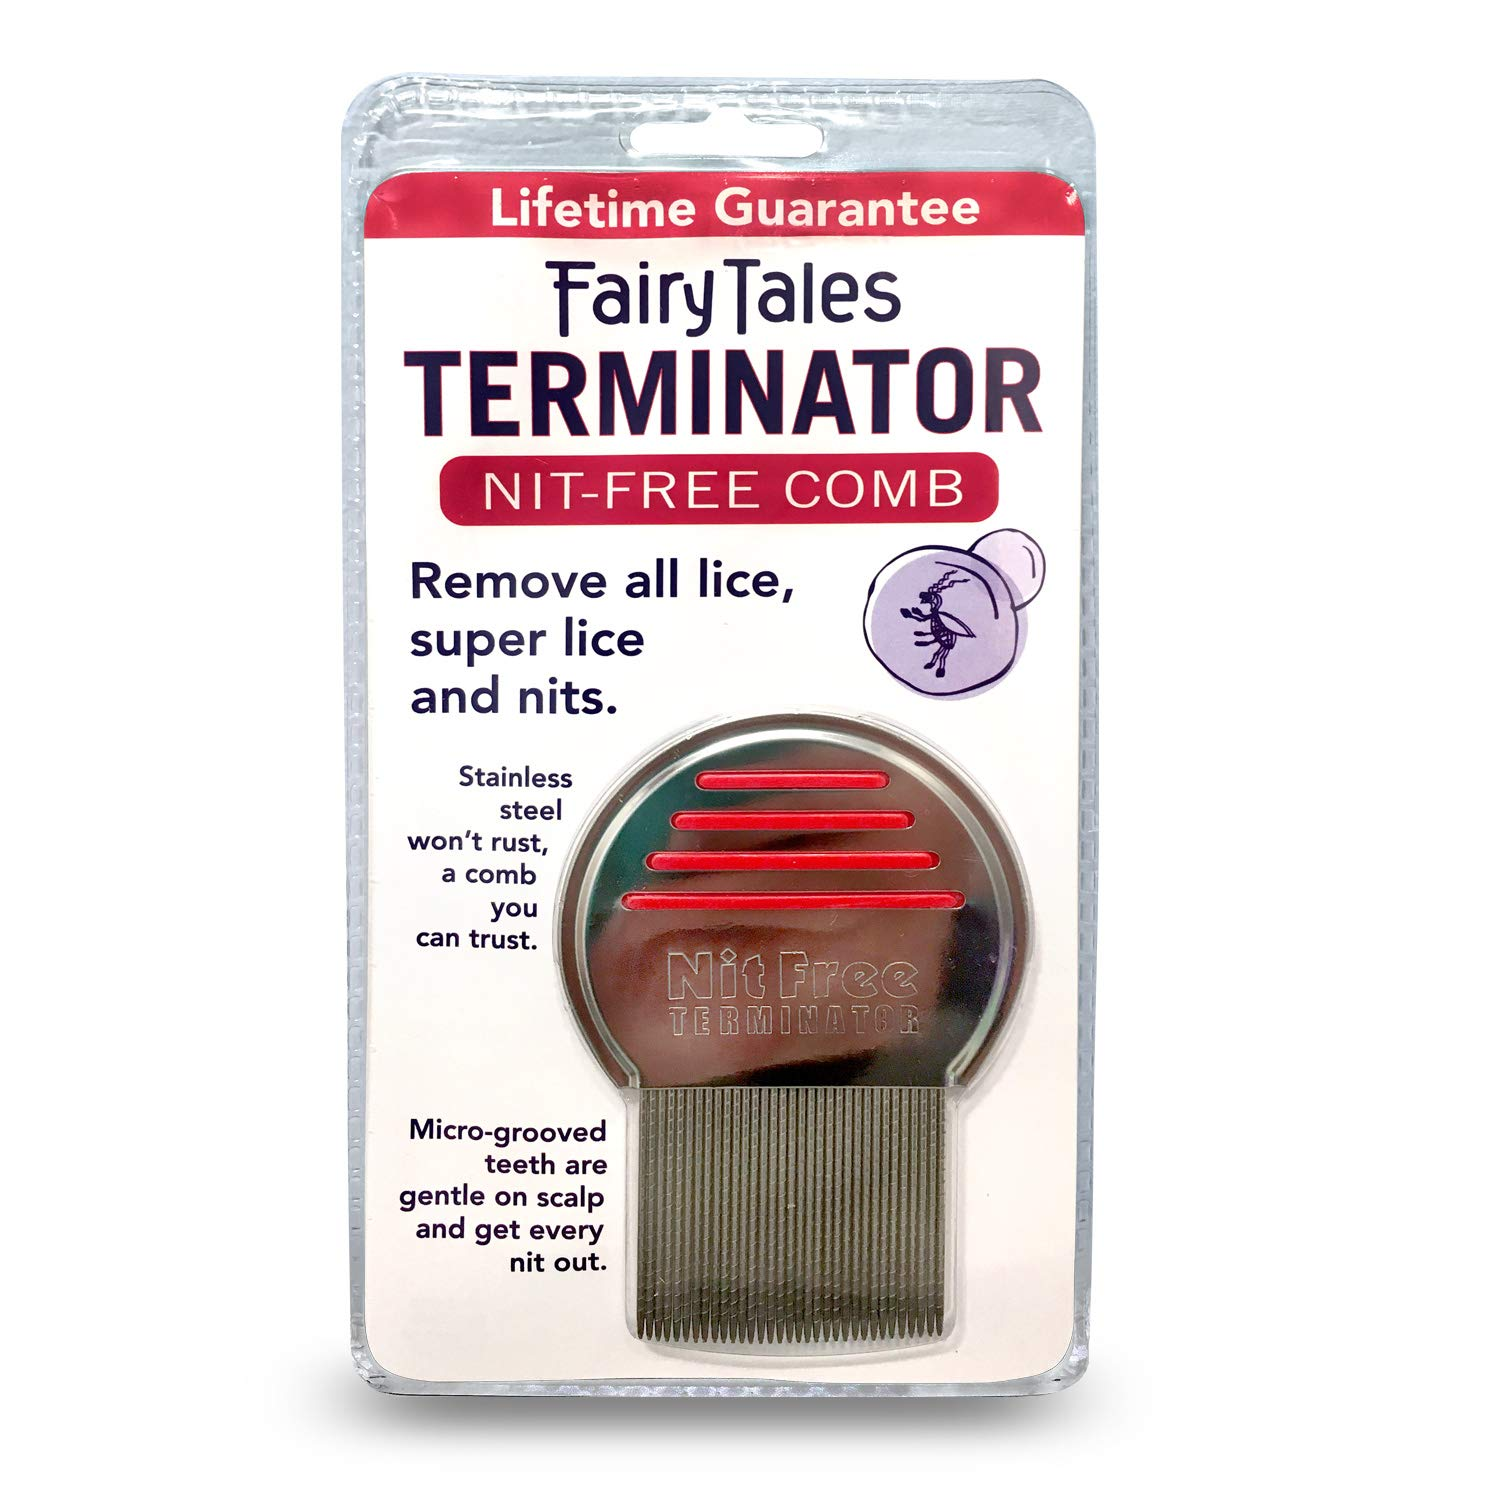 Terminator Metal Lice Comb by Fairy Tales for Kids - 1 pc Comb by Fairy Tales